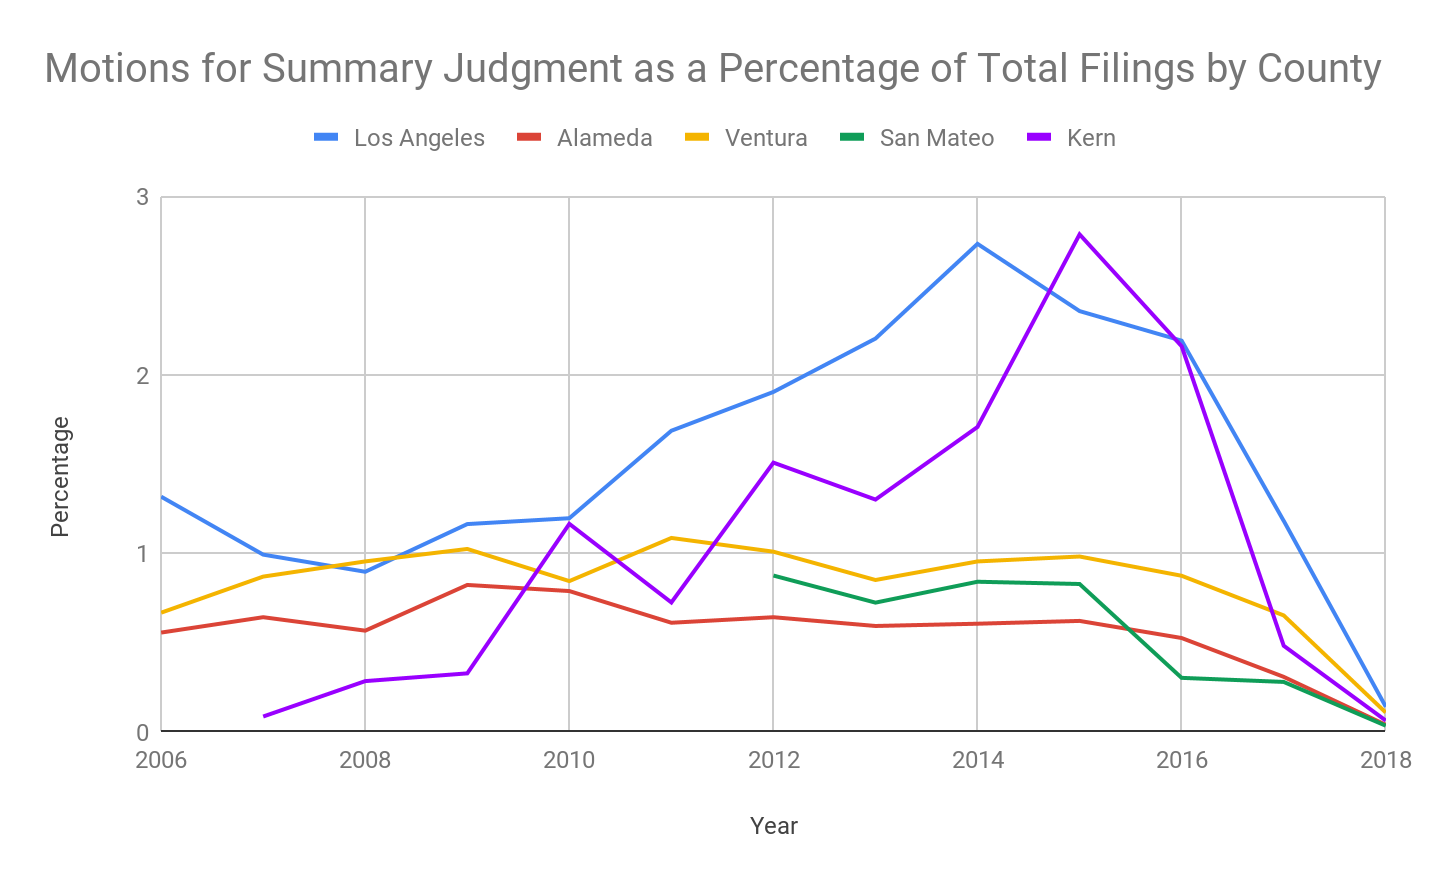 Graph of Motions for Summary Judgment as a Percentage of Total Filings by County